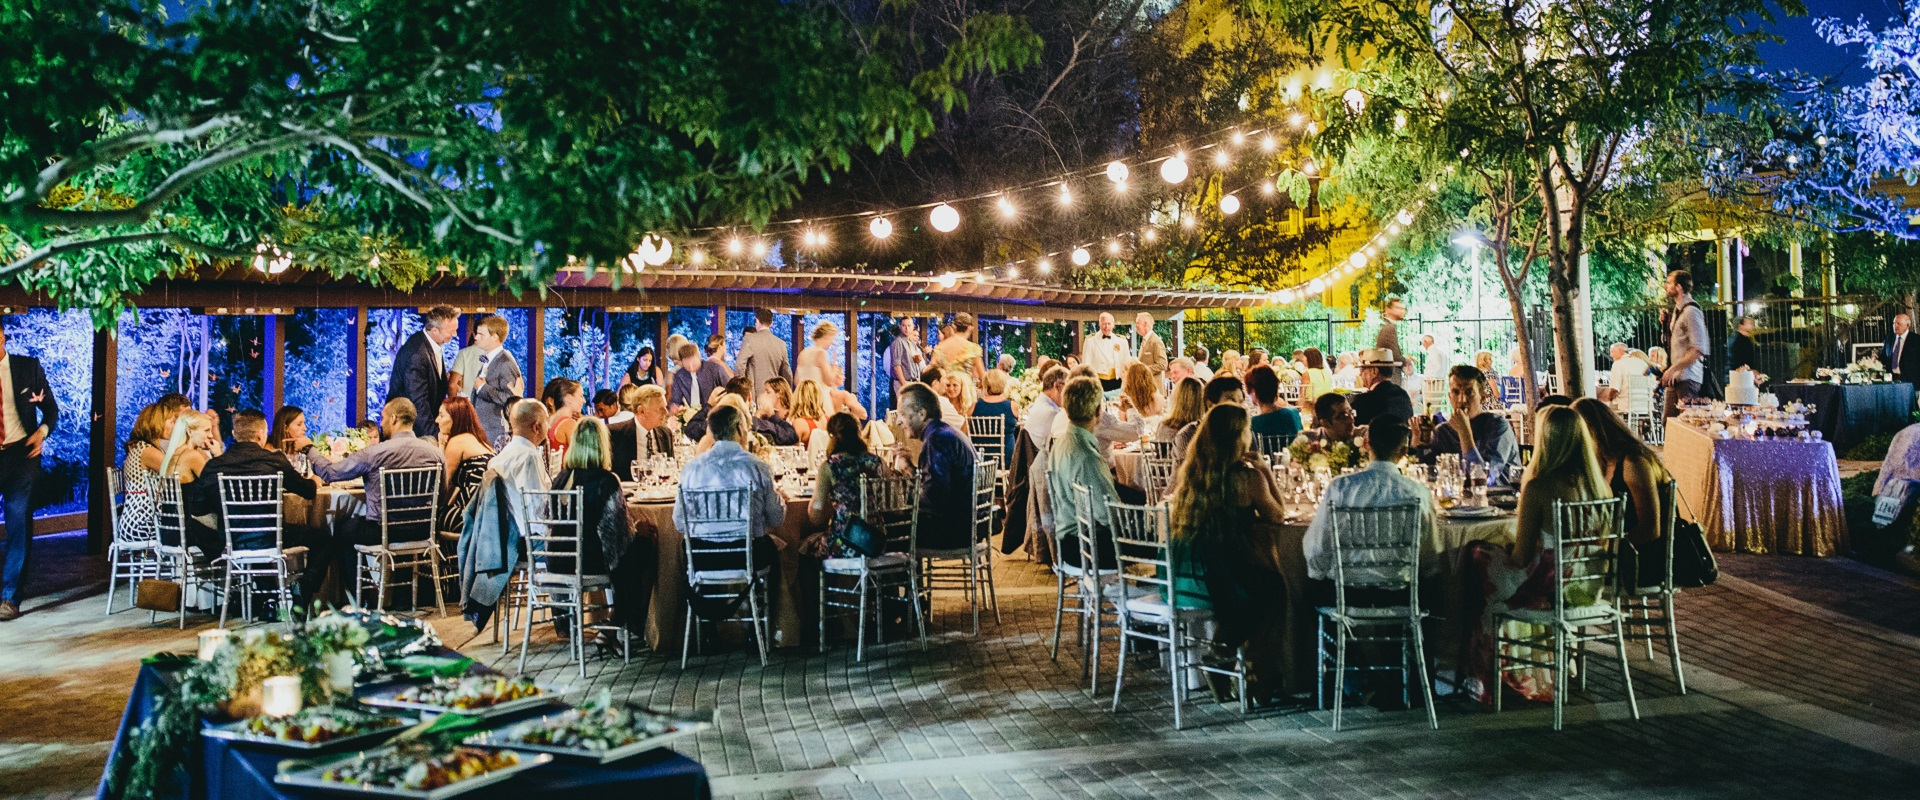 Weddings And Private Events Balboa Park